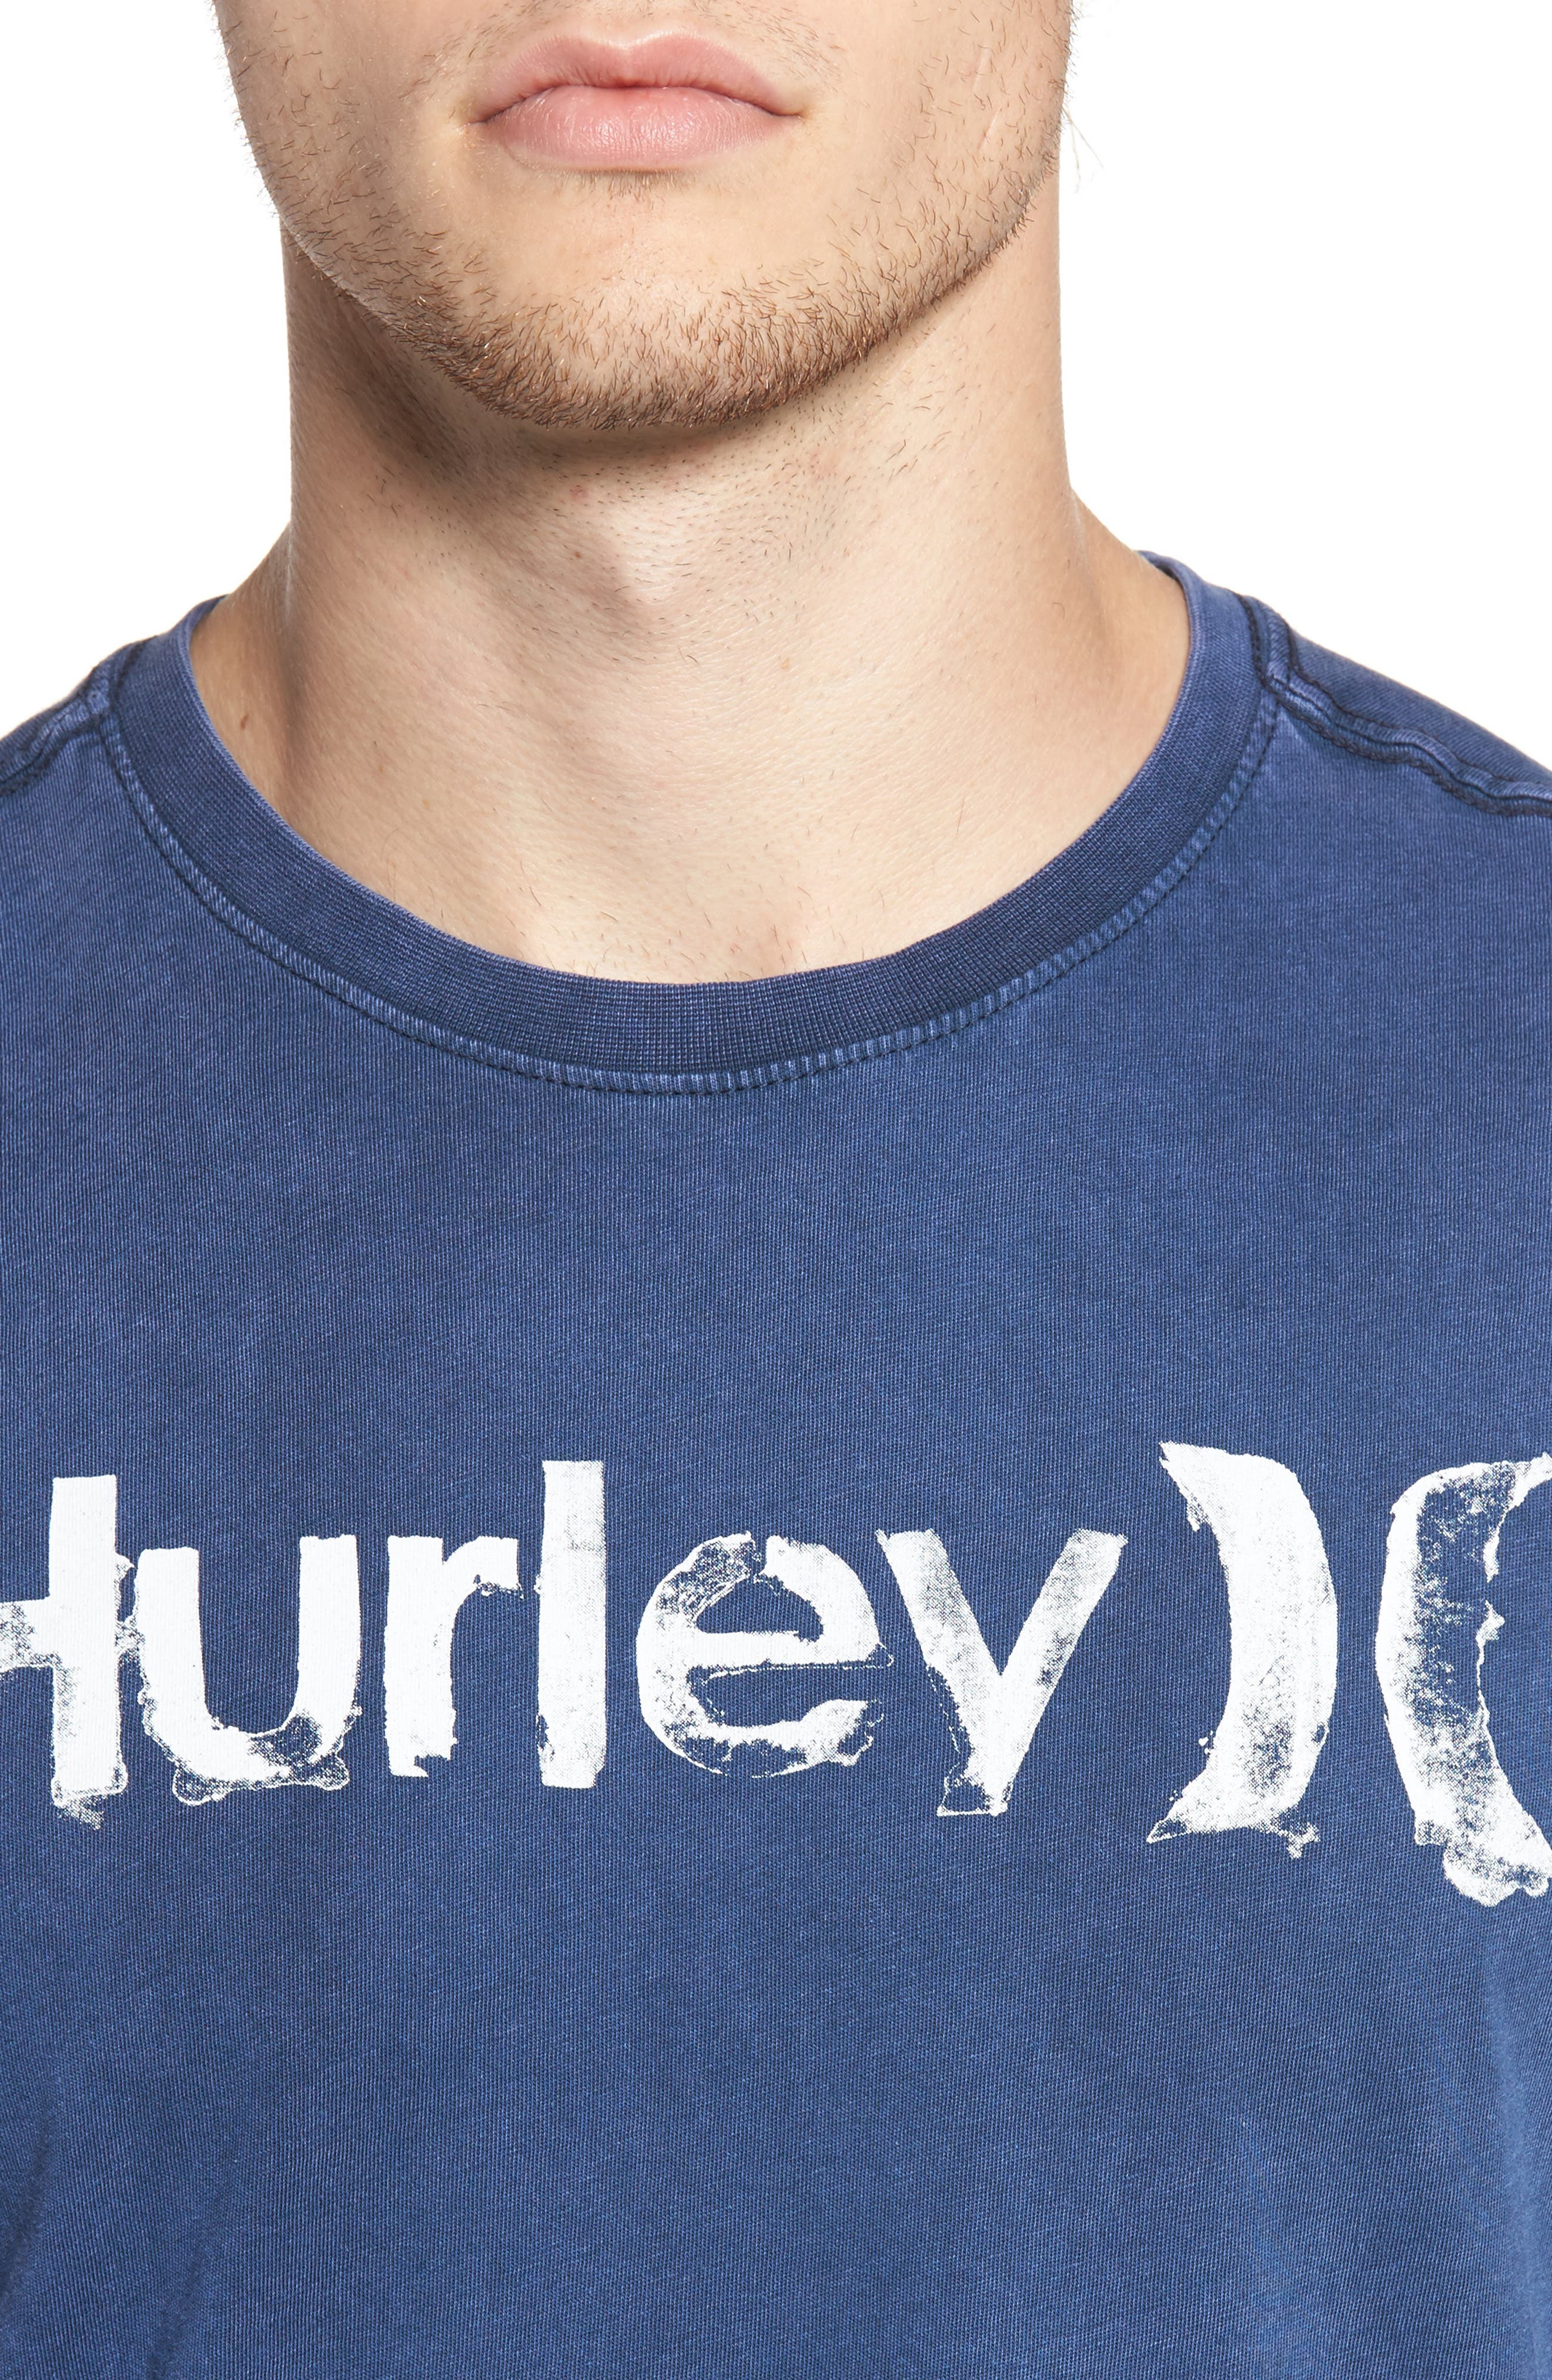 One and Only Acid Wash T-Shirt,                             Alternate thumbnail 4, color,                             419